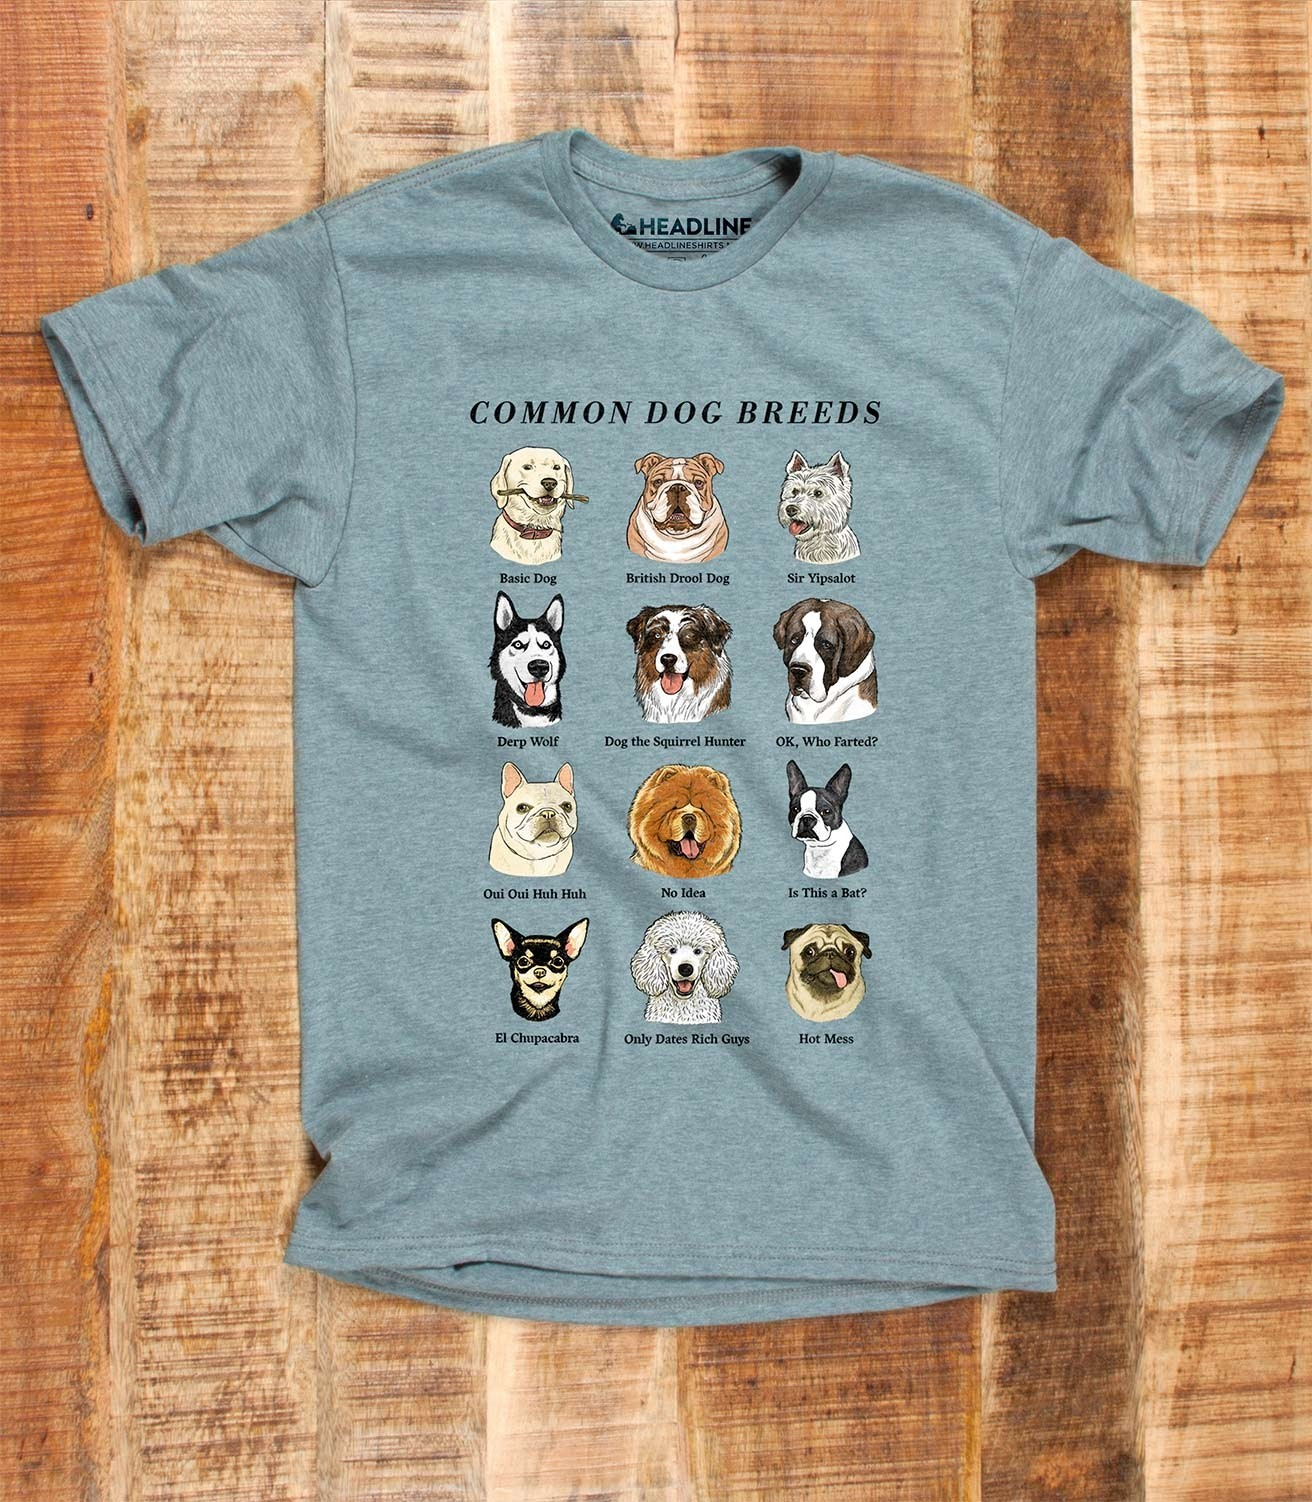 672d6e93 Common Dog Breeds Funny Men's Cotton/Poly T-Shirt | Headline Shirts